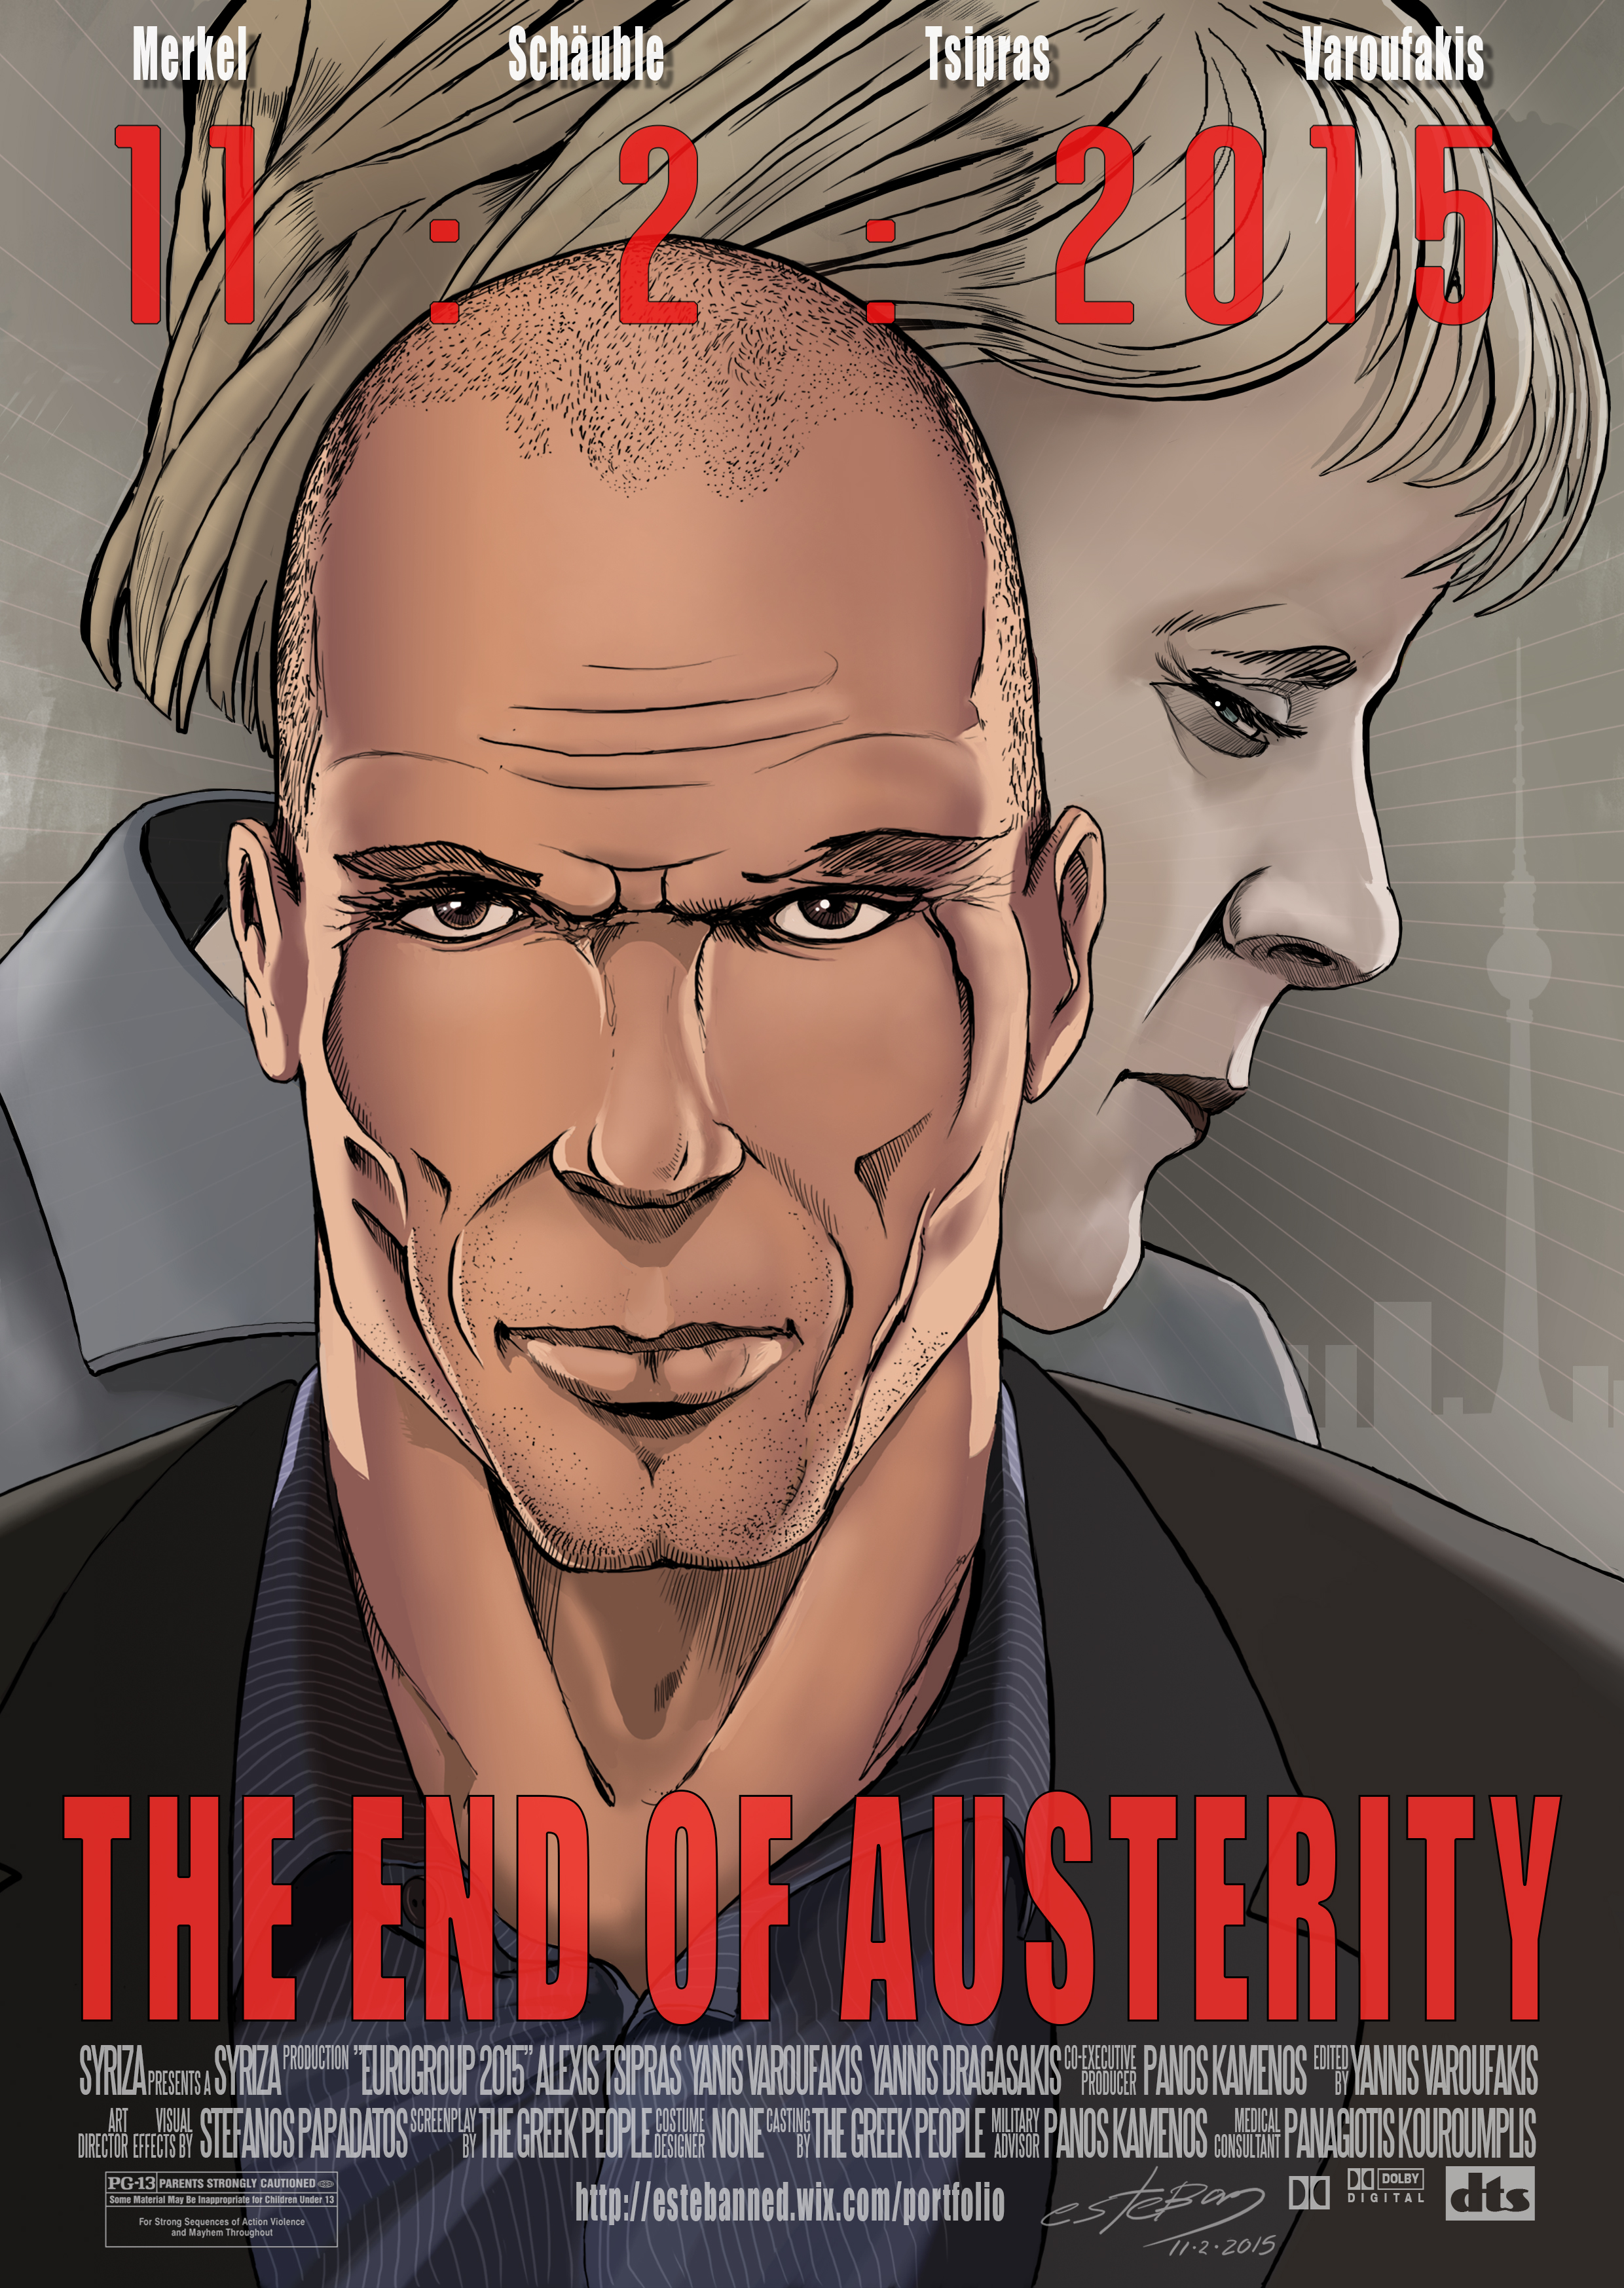 The End of Austerity